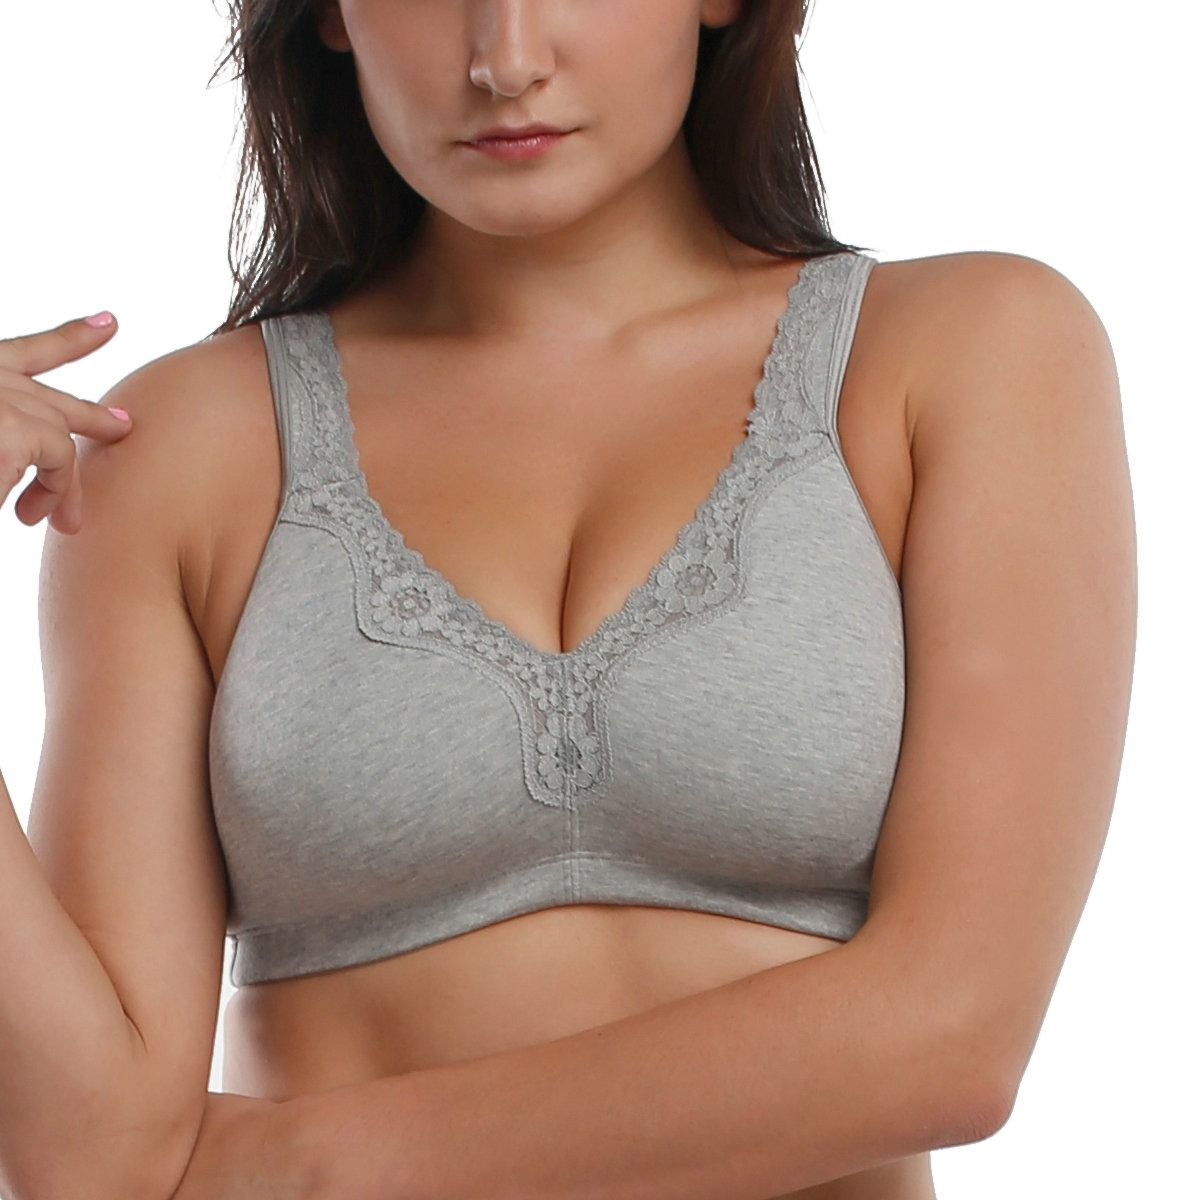 La-Isla-Womens-Cotton-Non-Padded-Lace-Trim-Full-Coverage-Wirefree-Plus-Size-Bra